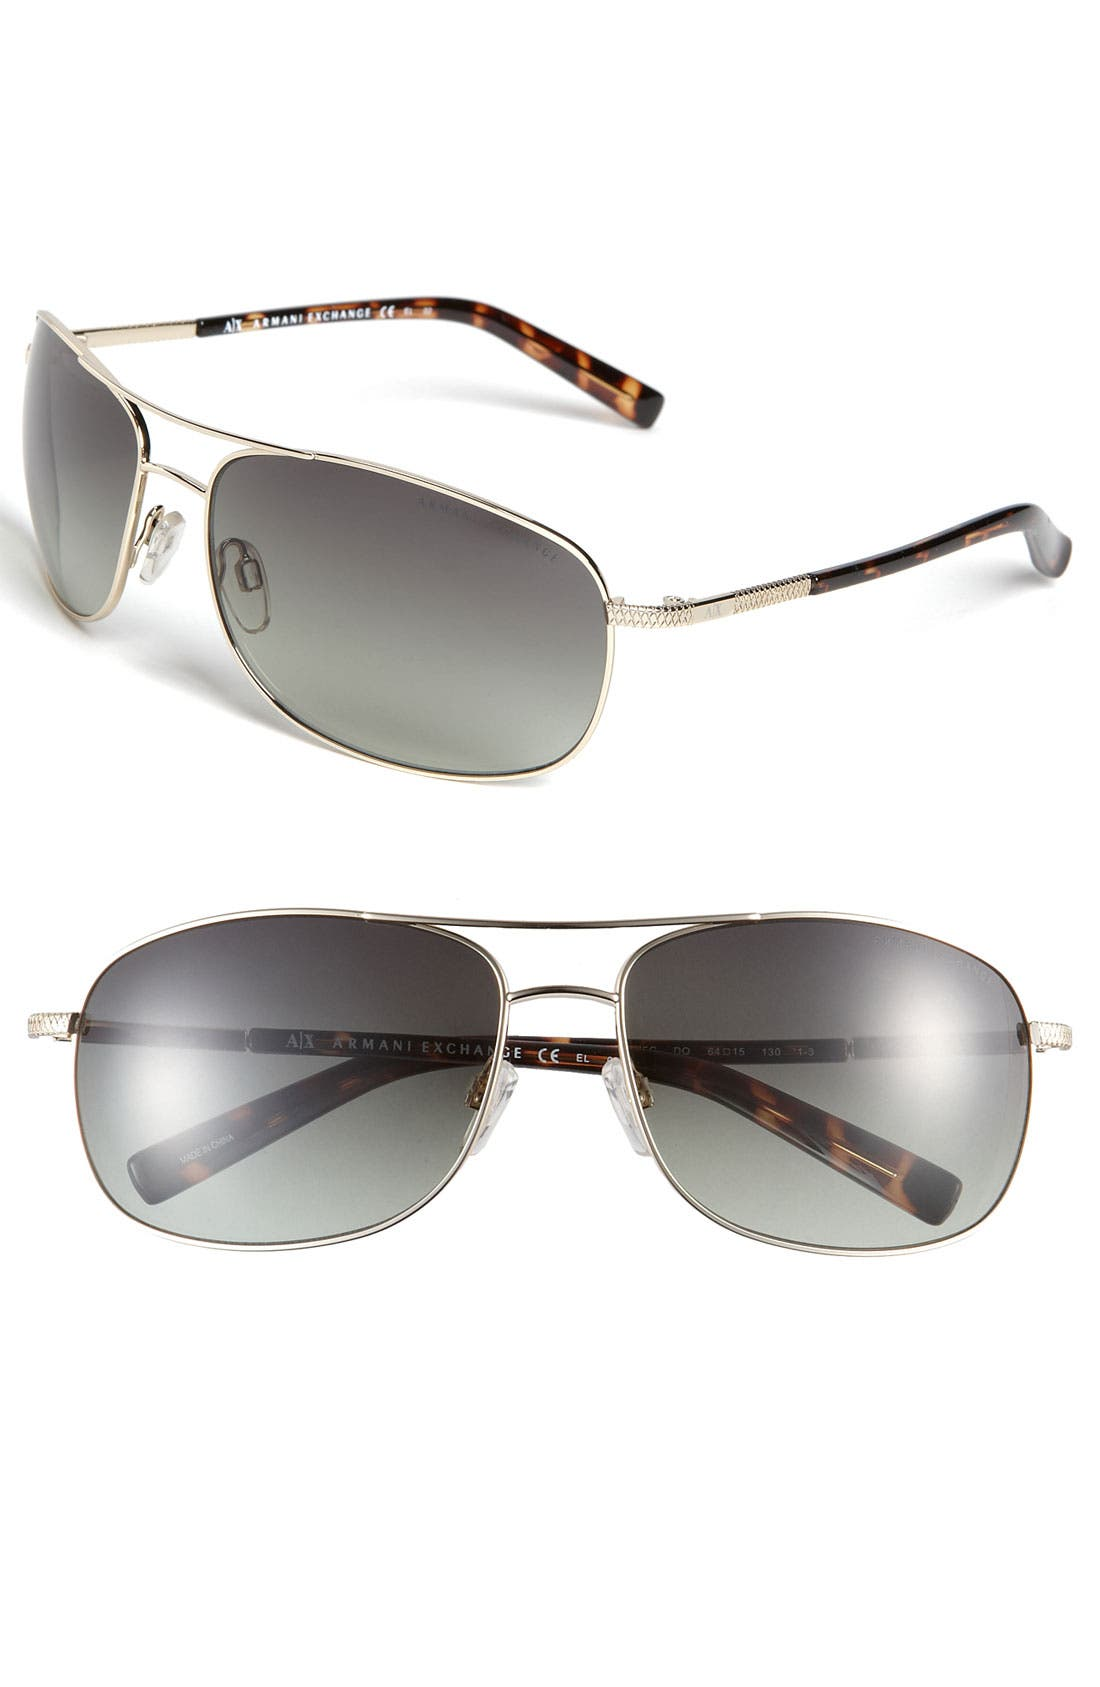 Main Image - AX Armani Exchange Metal Navigator Sunglasses